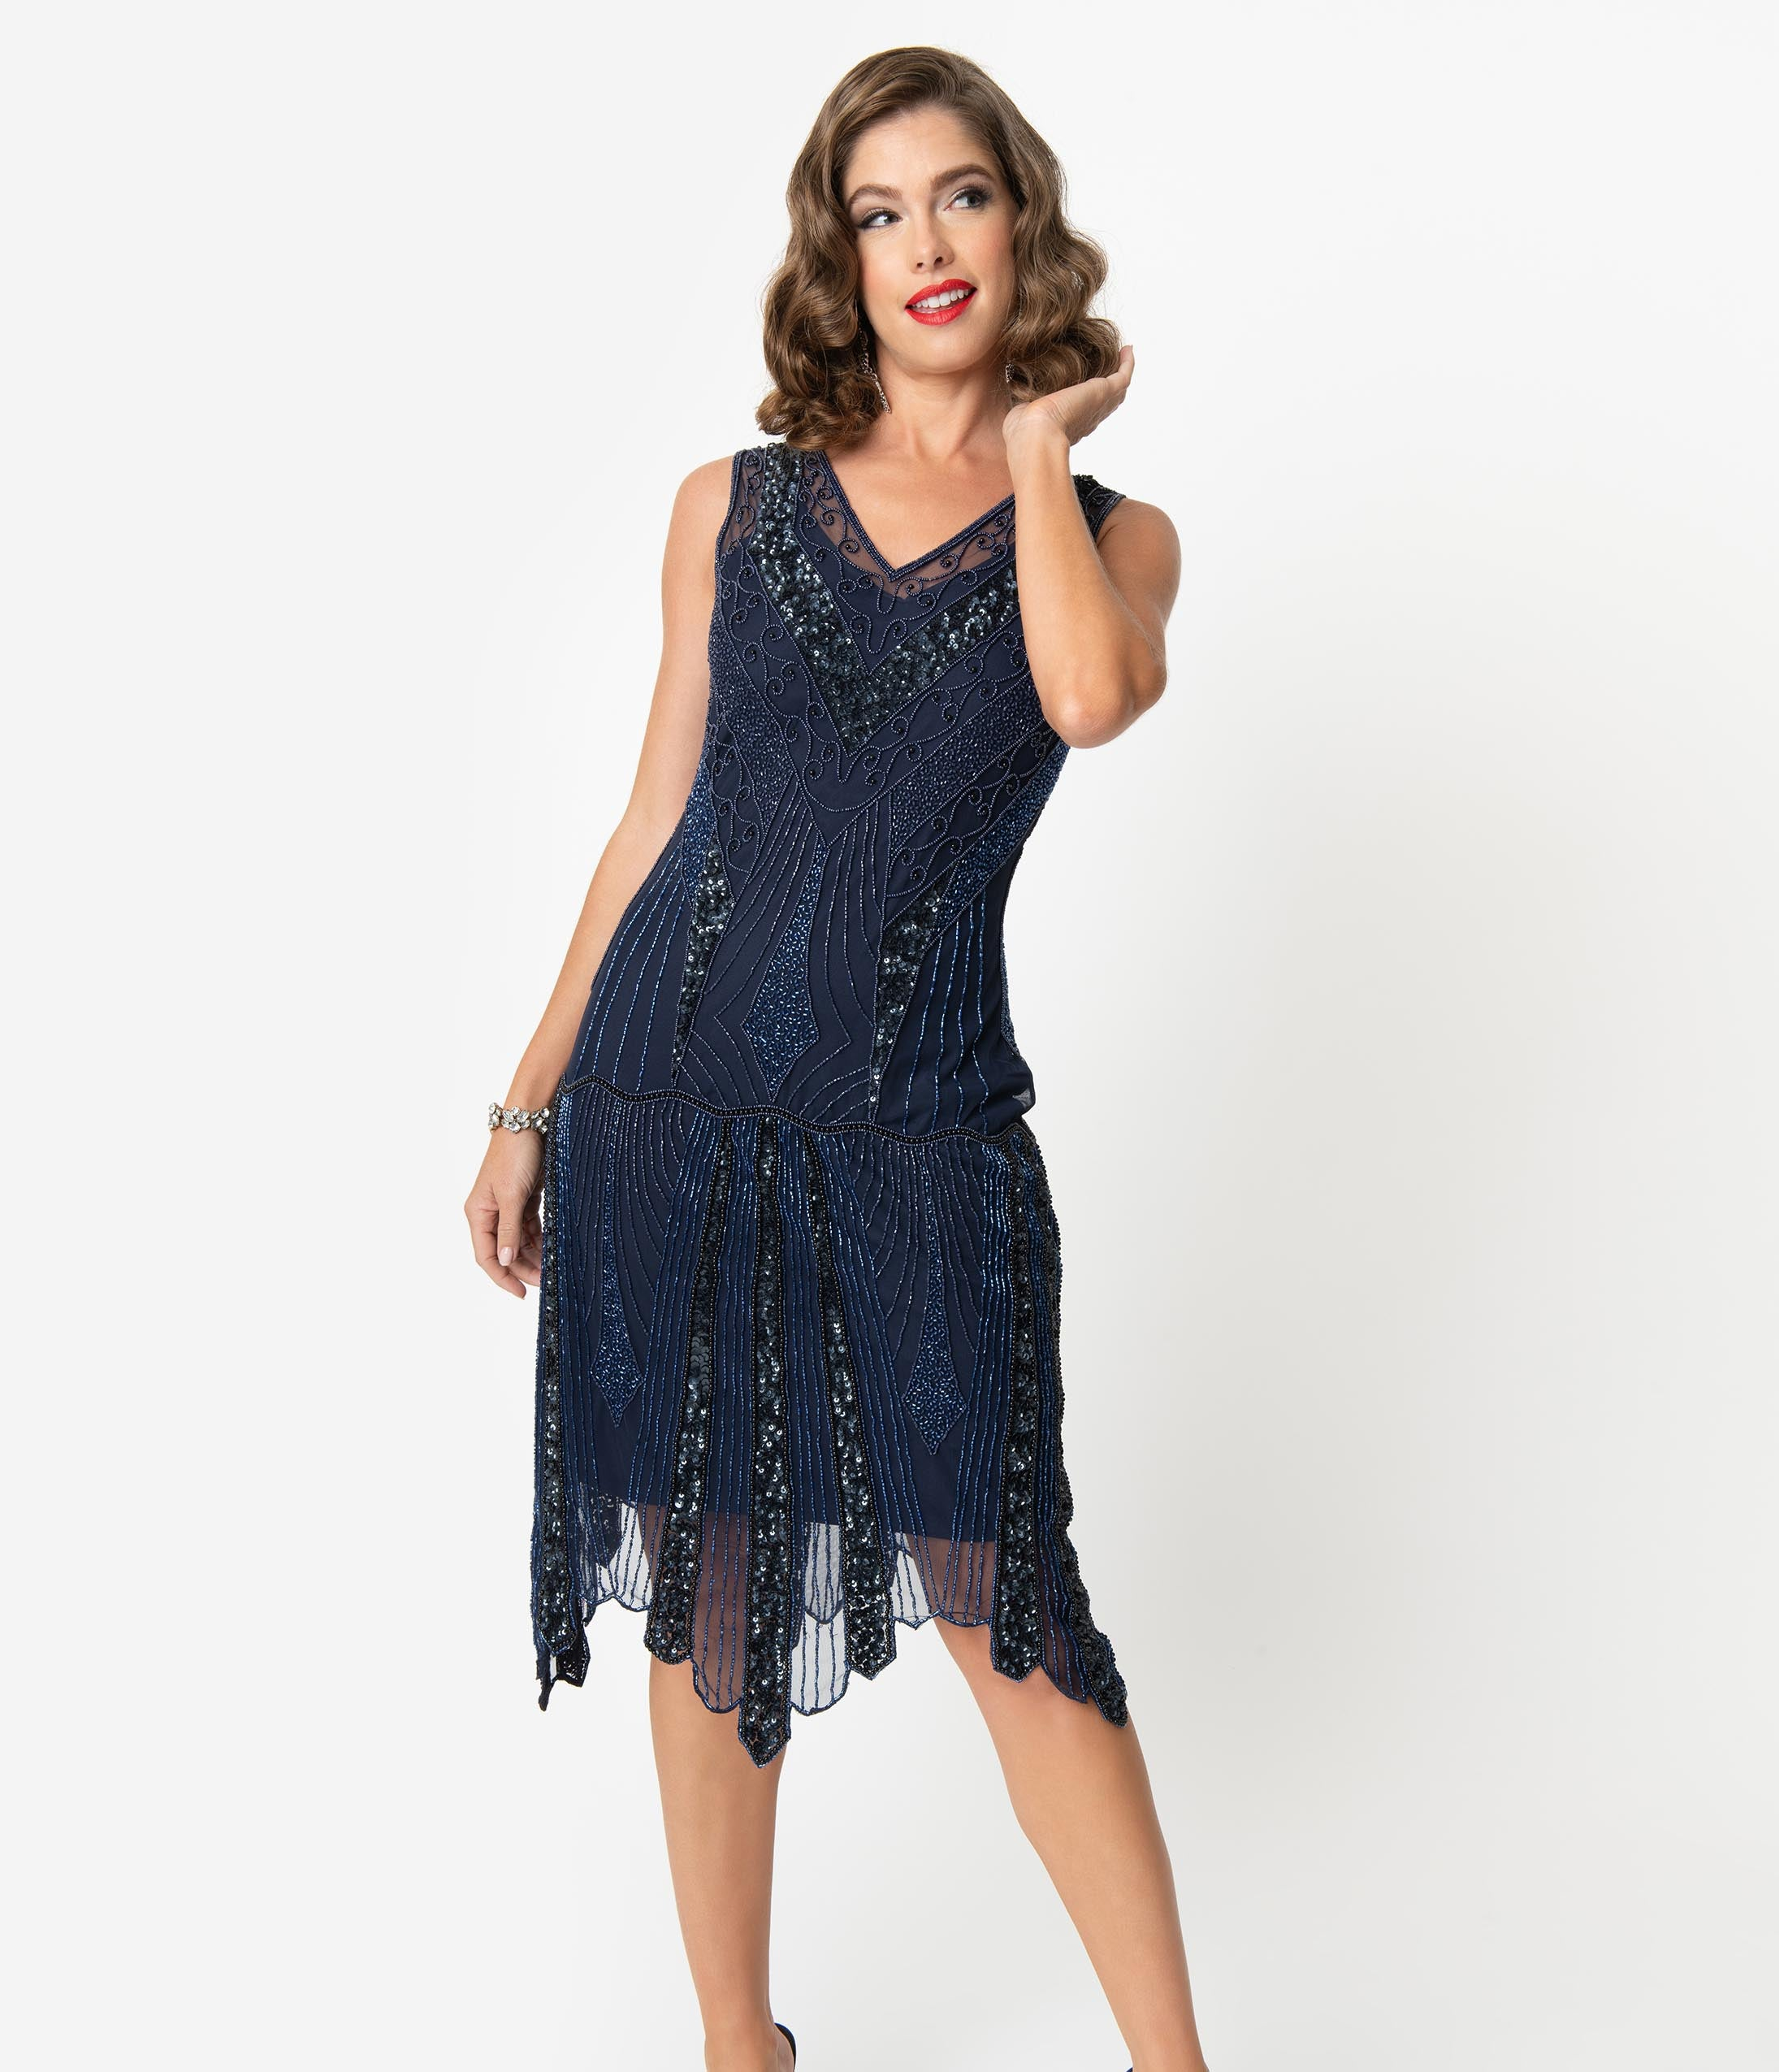 Flapper Dresses & Quality Flapper Costumes 1920S Style Navy Blue Beaded Deco Sleeveless Renee Flapper Dress $178.00 AT vintagedancer.com